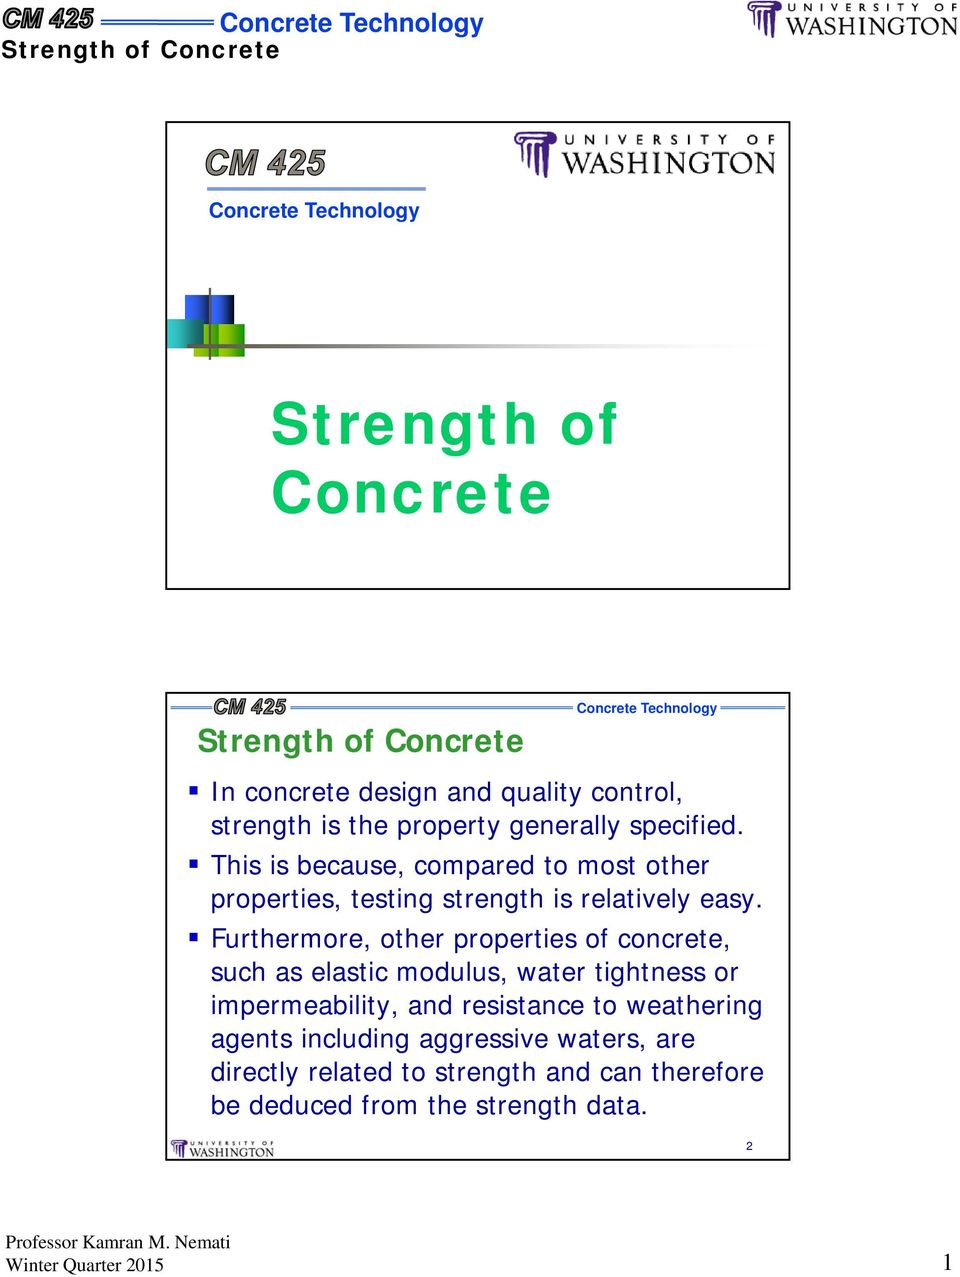 Furthermore, other properties of concrete, such as elastic modulus, water tightness or impermeability, and resistance